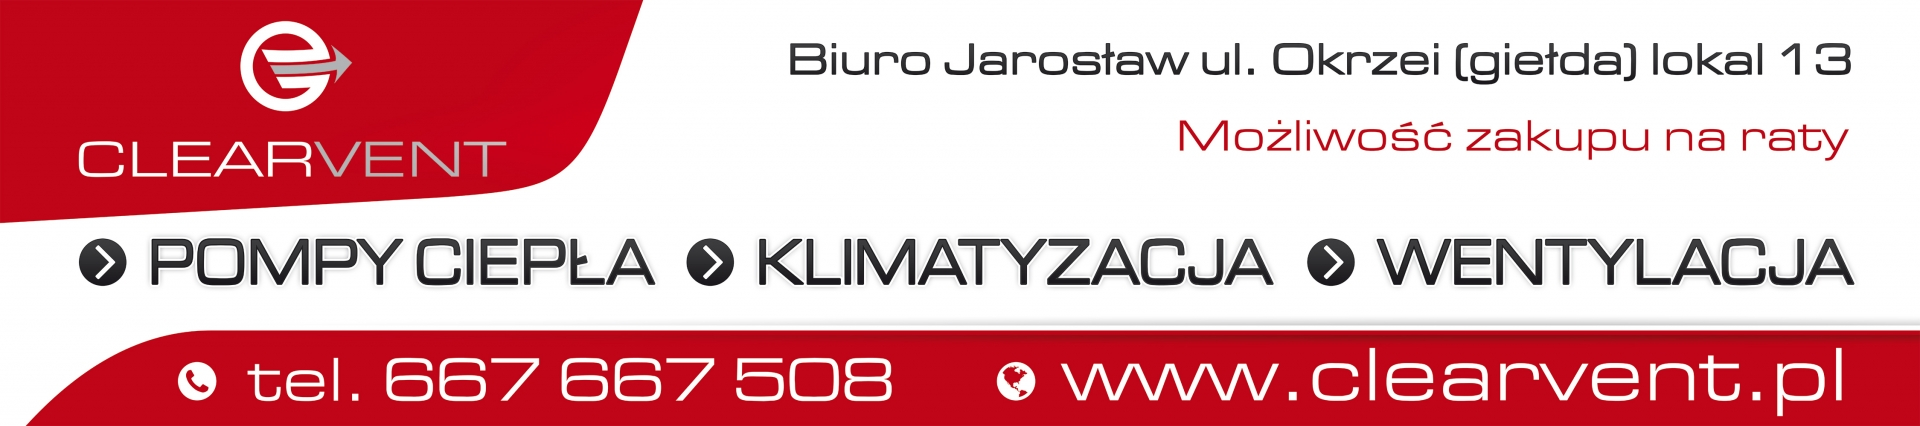 CLEARVENT - Banner 450x100cm. Banner na płoty